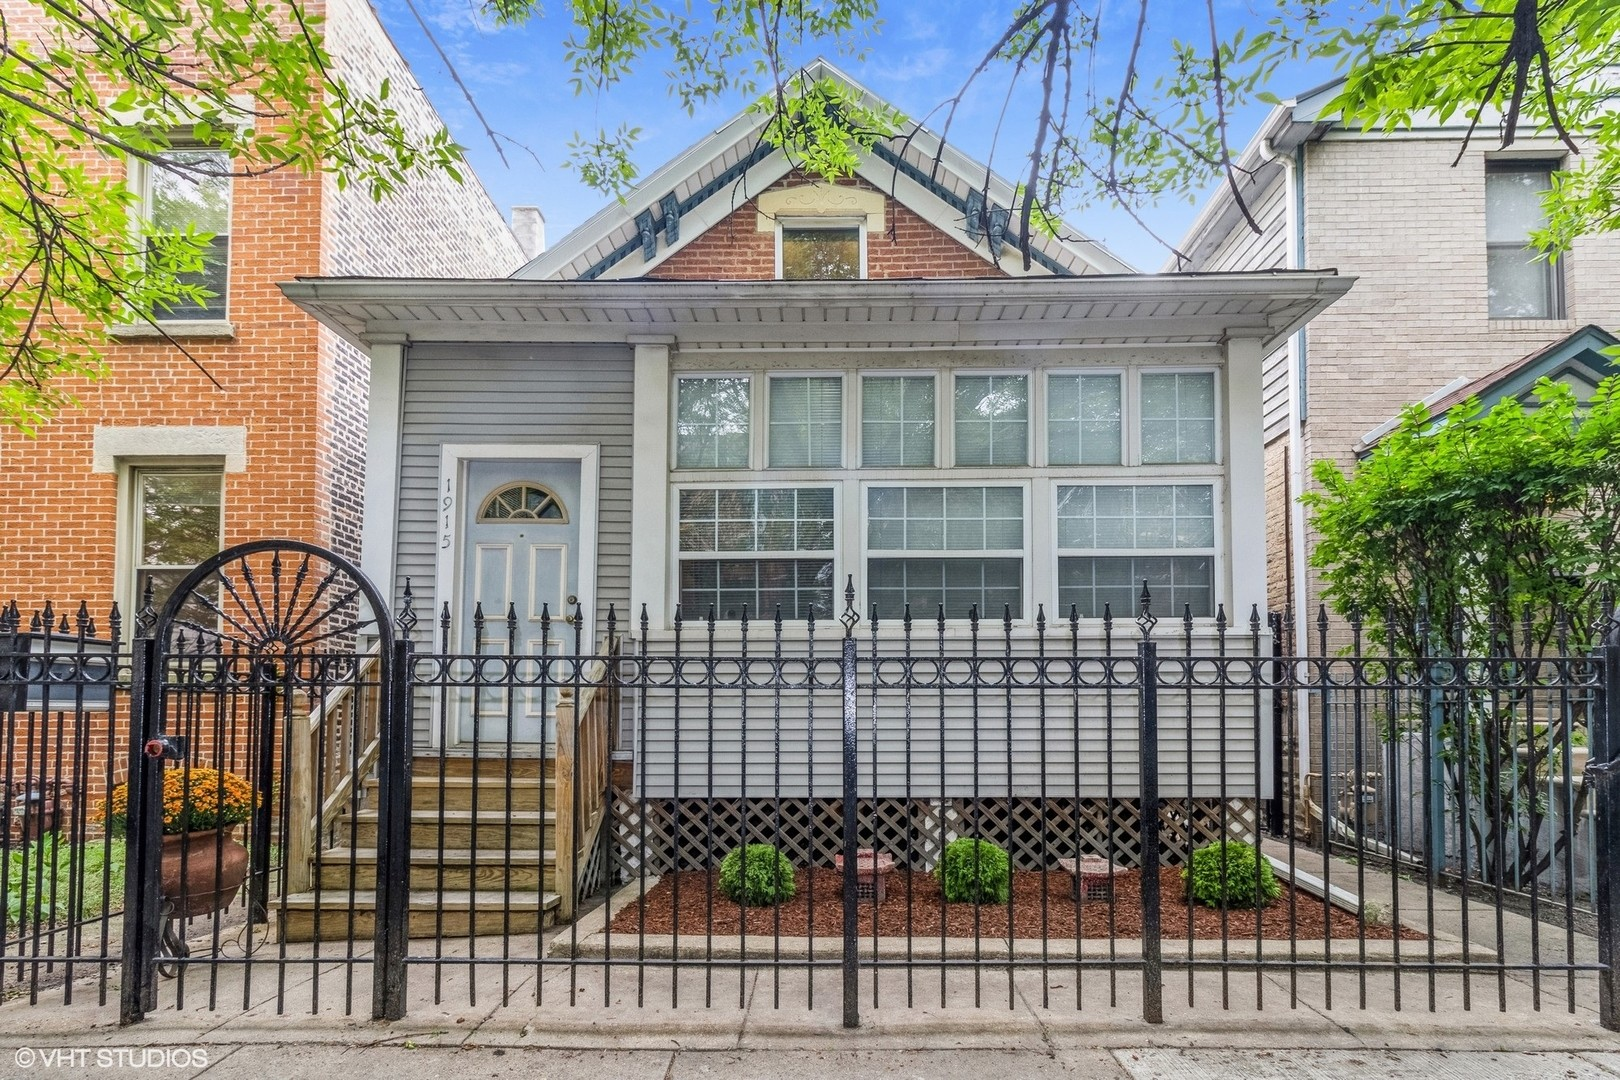 1092 SqFt House In Lincoln Park